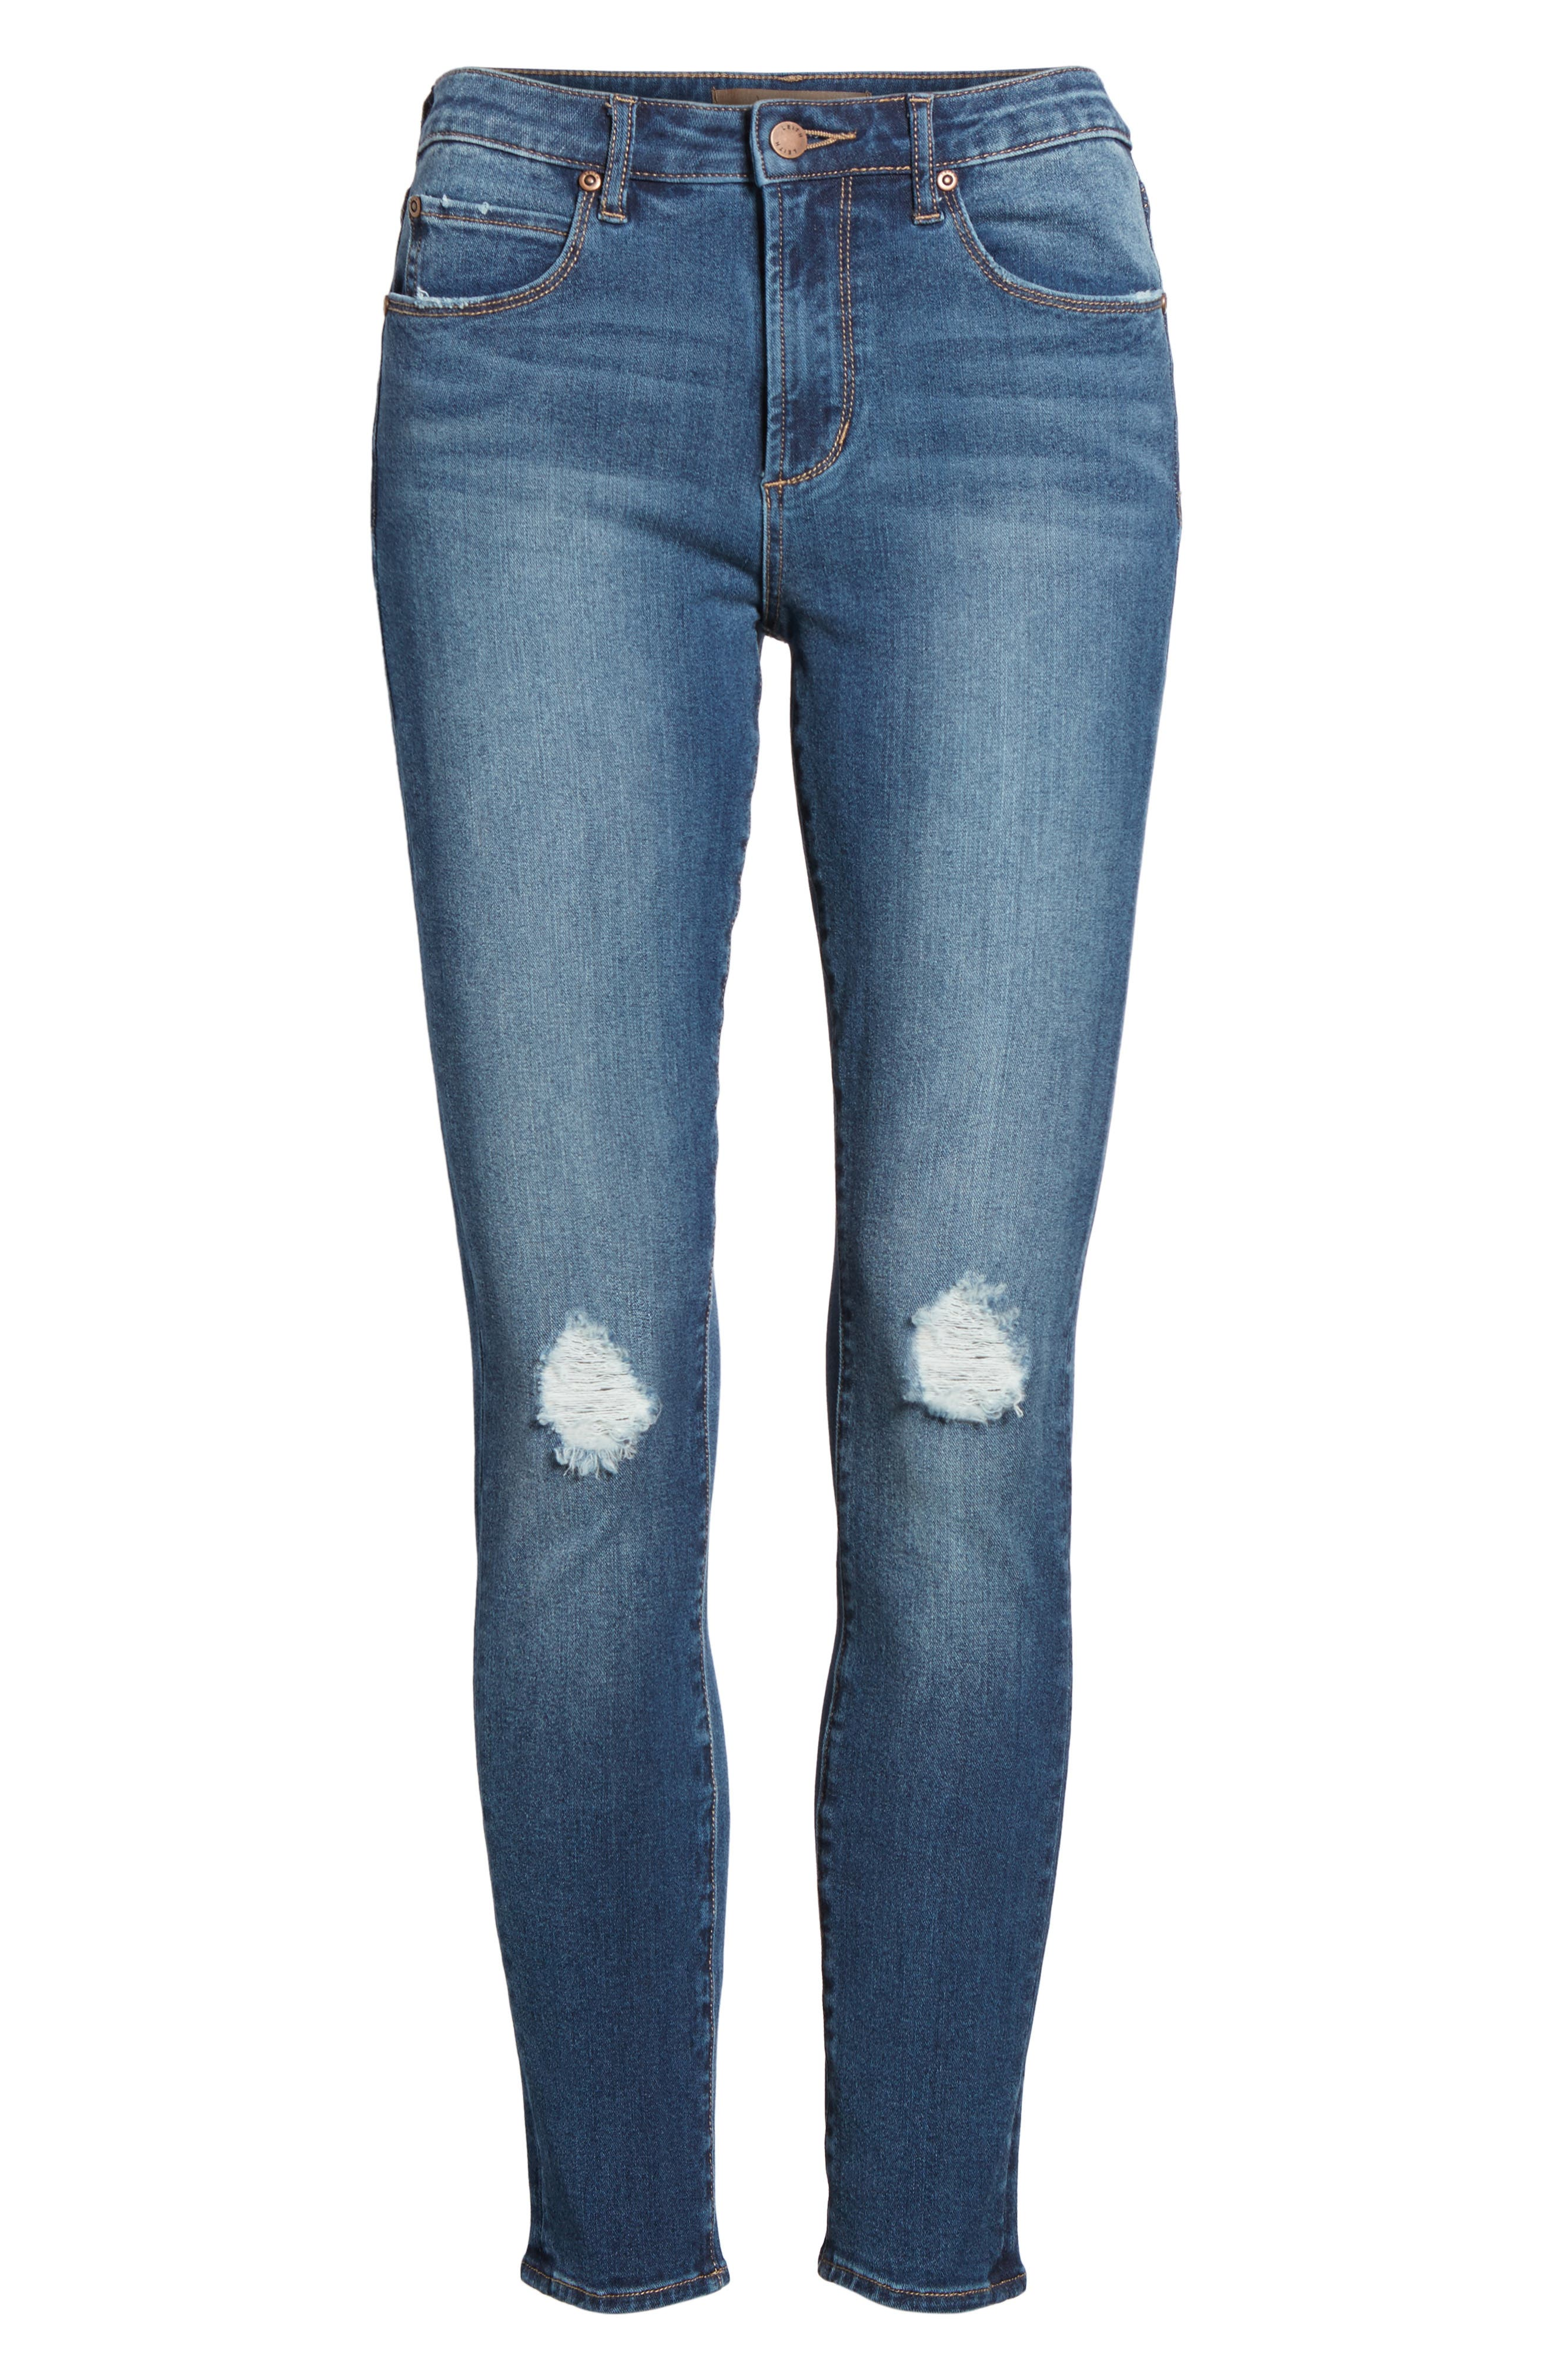 Distressed Skinny Ankle Jeans,                             Alternate thumbnail 7, color,                             Medium Wash